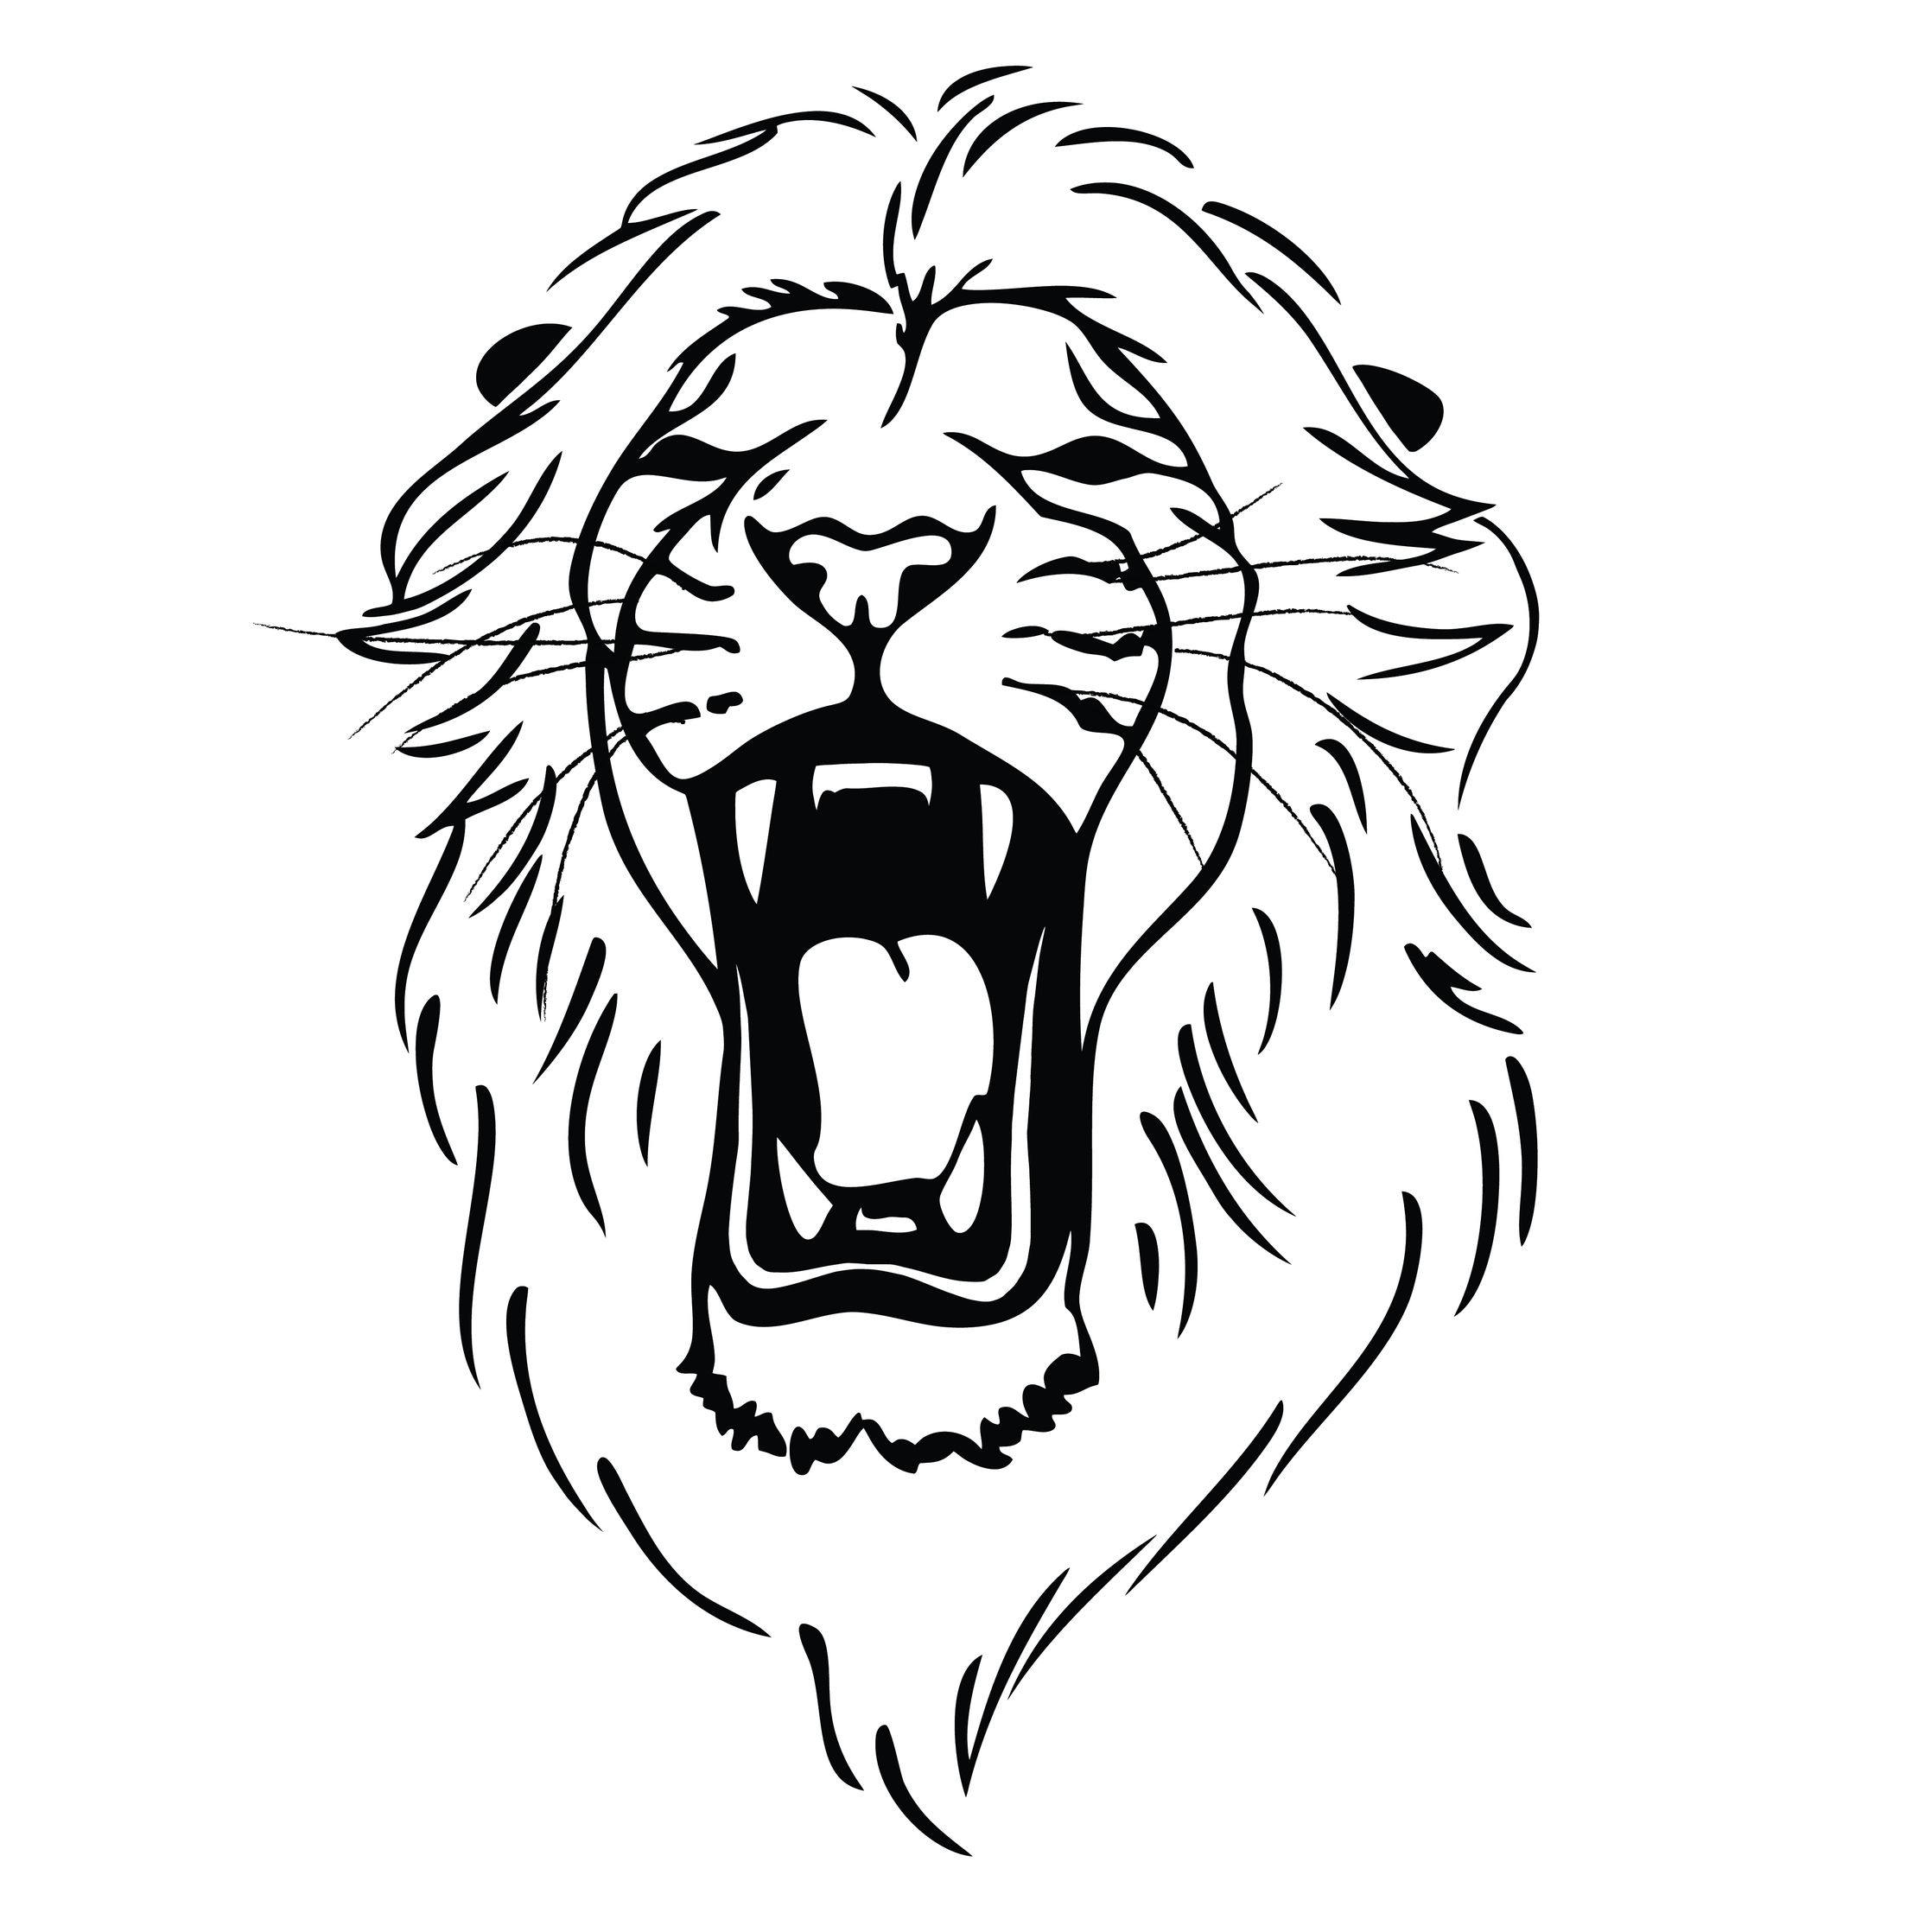 Lion clipart easy laying down black and white svg black and white download Lion Roaring Drawing | Clipart Panda - Free Clipart Images ... svg black and white download